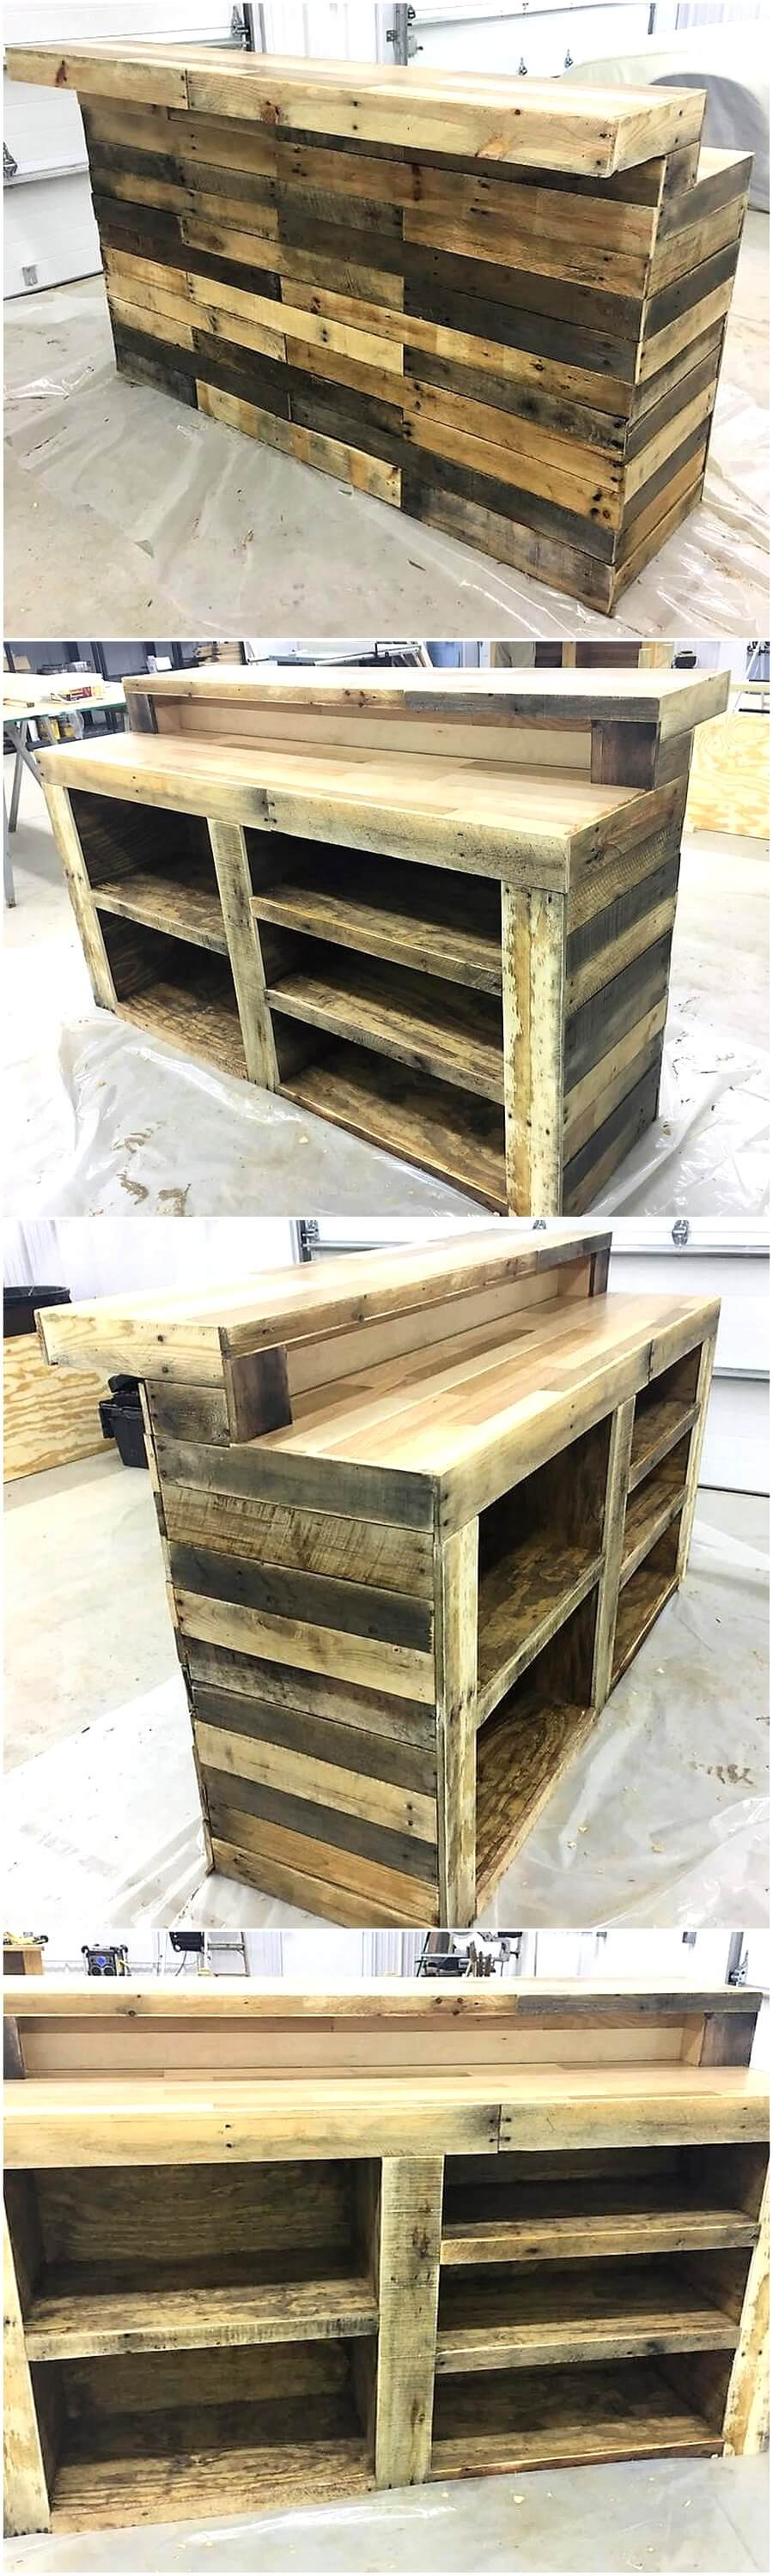 Repurposed Wooden Pallets Bar Classic Bar